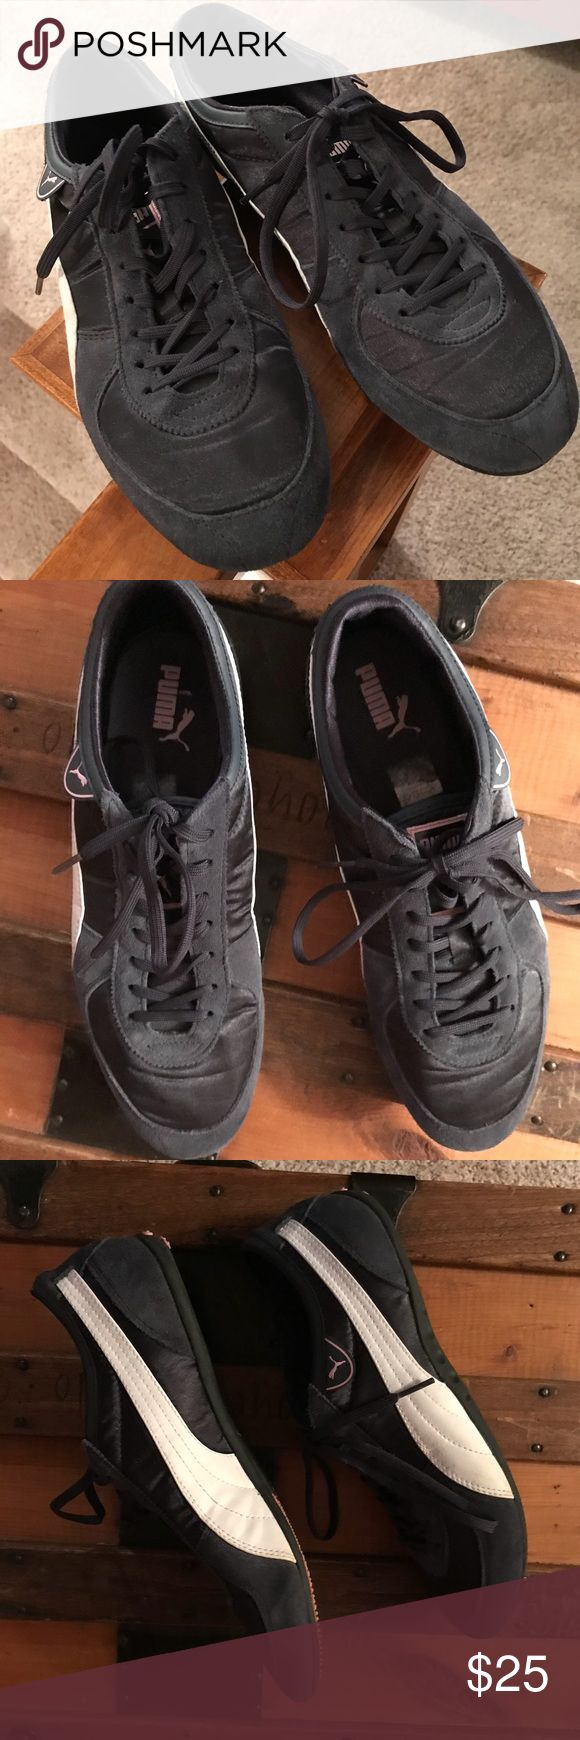 PUMA tennis shoes Navy blue with white stripes Puma flat soled tennis shoes. size 10 Puma Shoes Sneakers